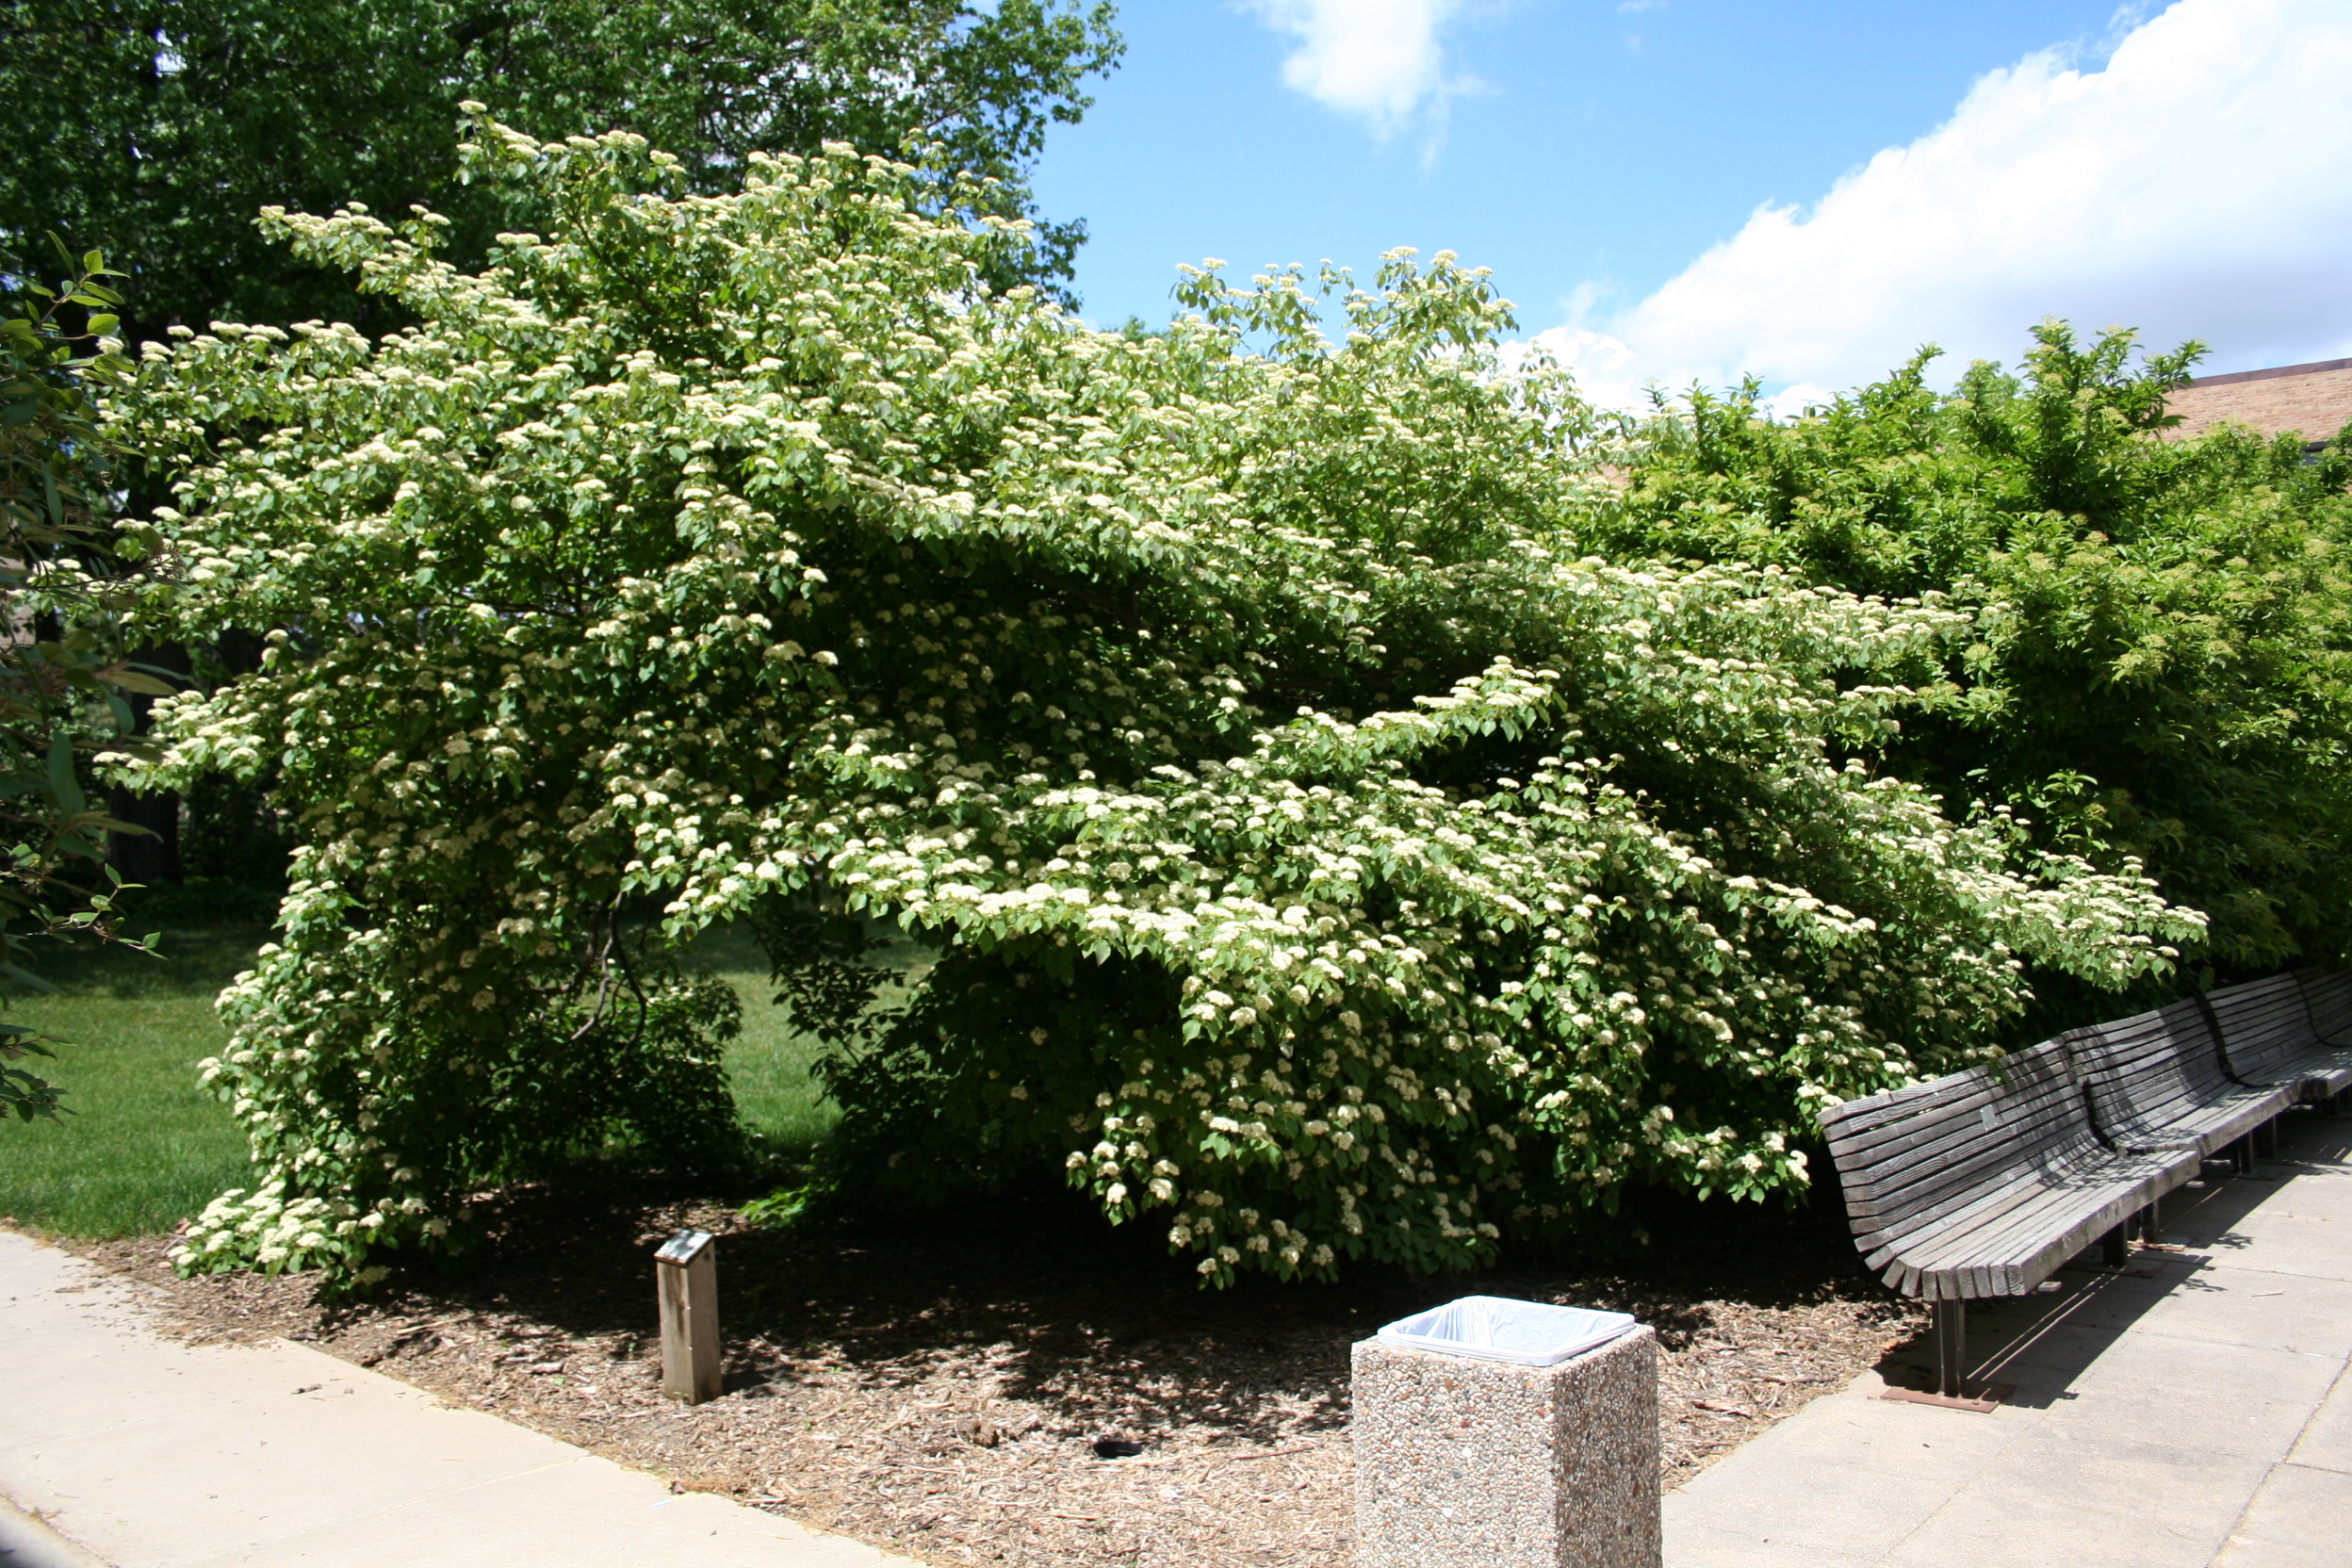 A row these shrubs while flowering adorn bench seating